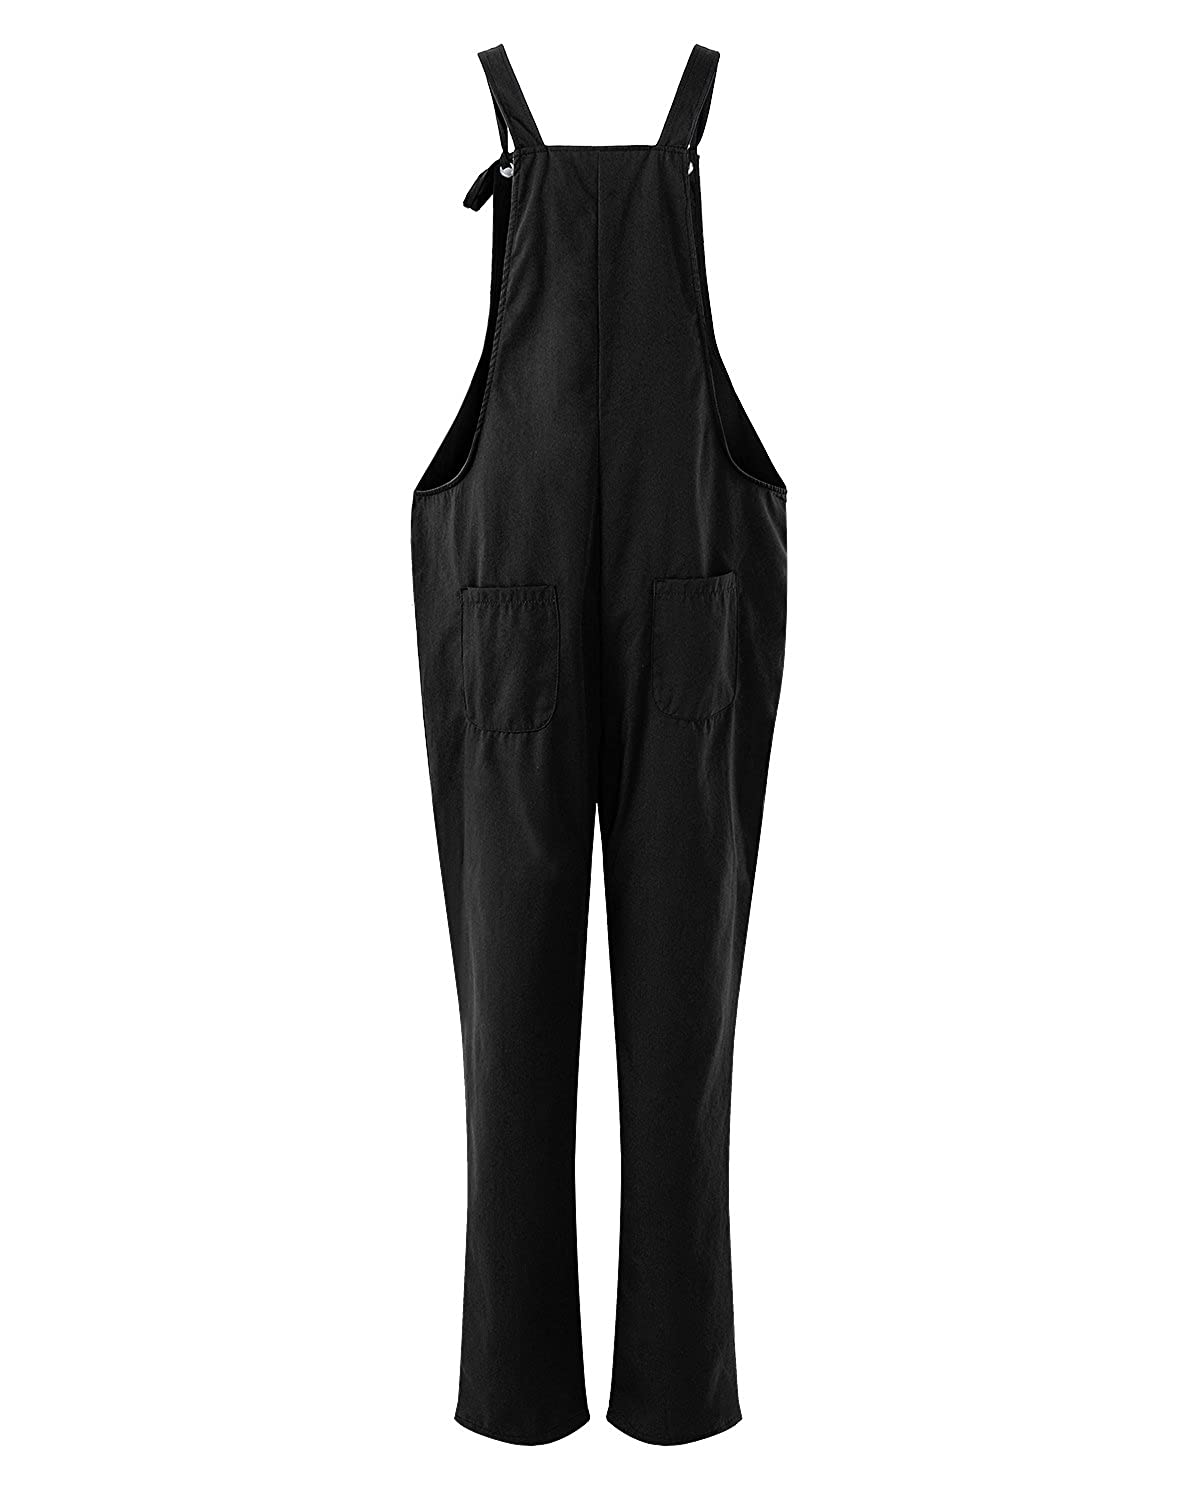 0a168511e4a ACHIOOWA Women s Dungarees Romper Jumpsuit Playsuit Sleeveless Baggy Loose  Trousers Pants Overalls  Amazon.co.uk  Clothing